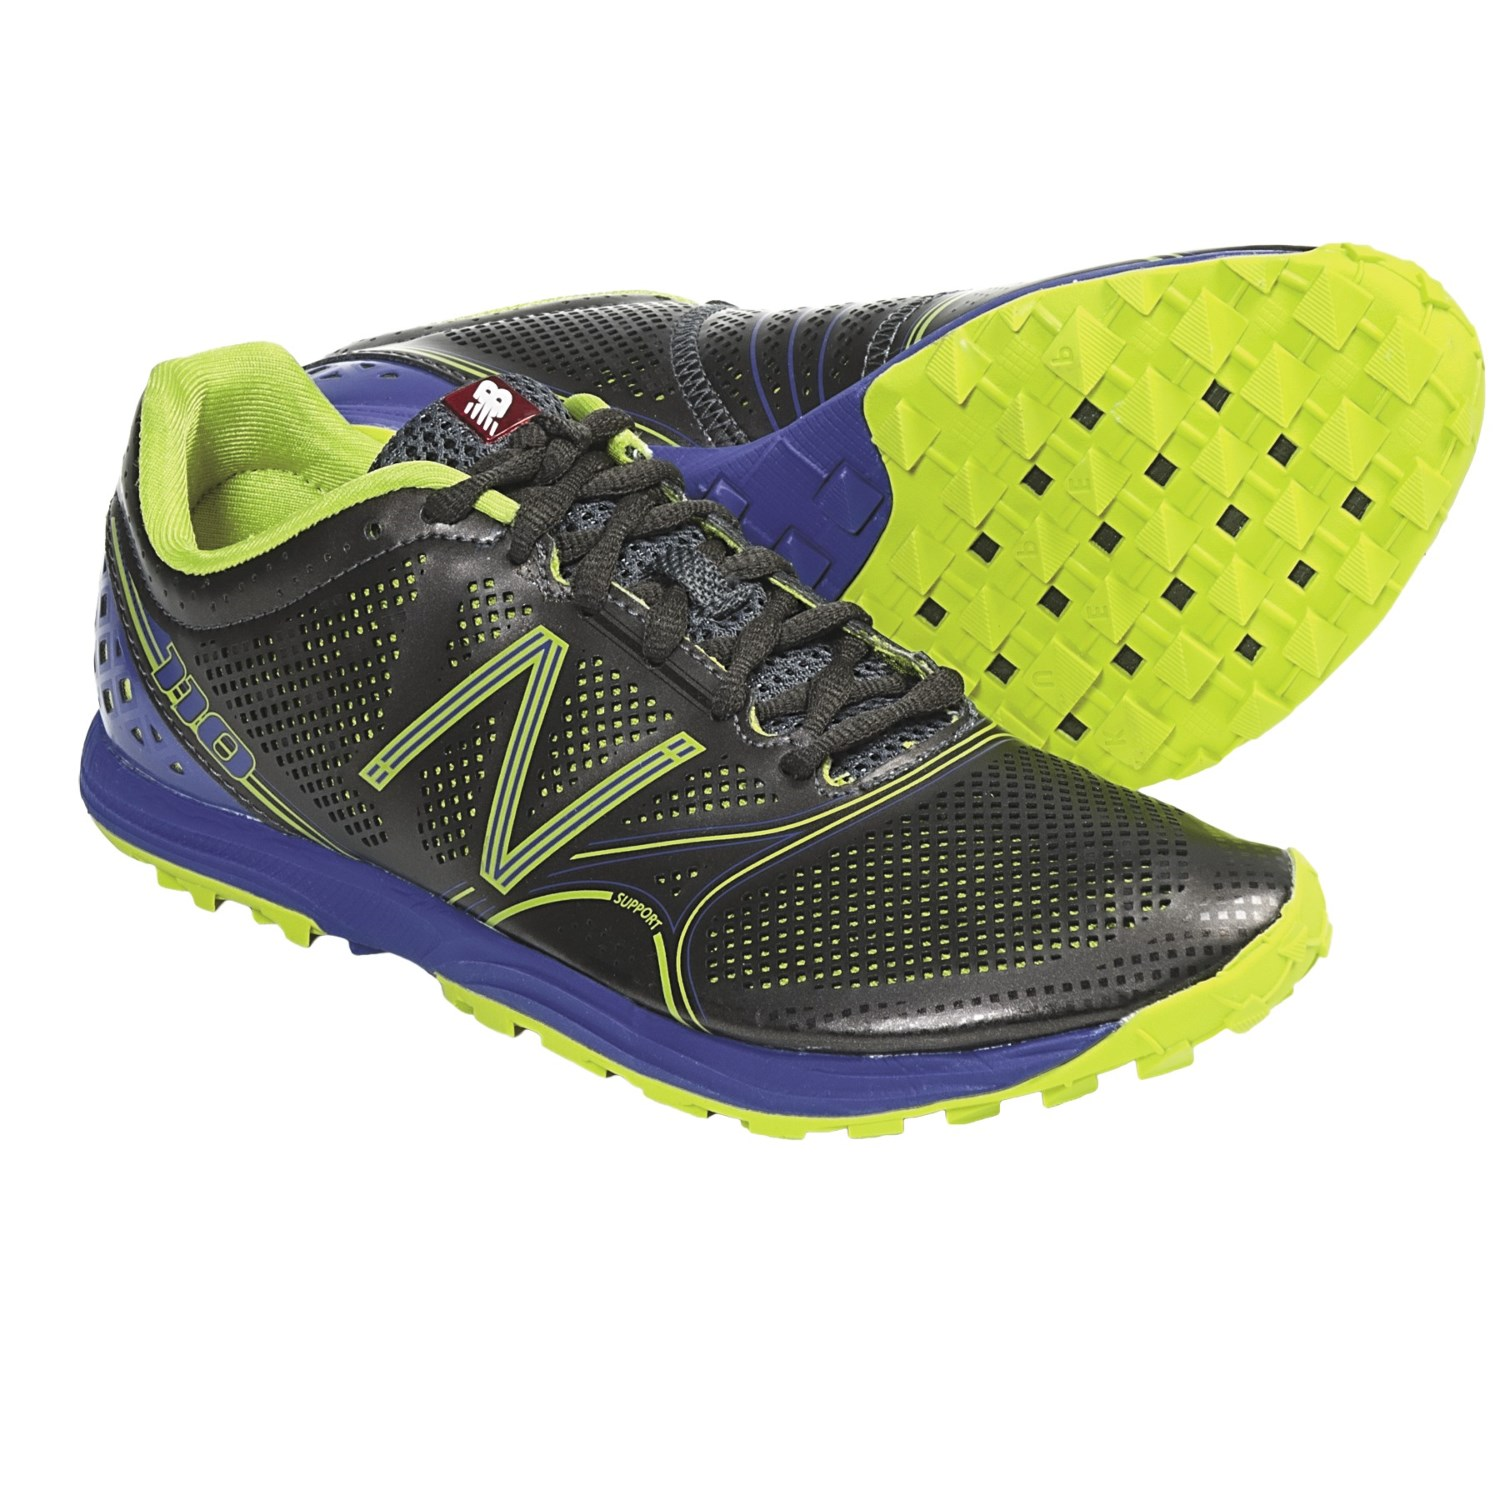 new balance 110 race walking shoes dv8 sports